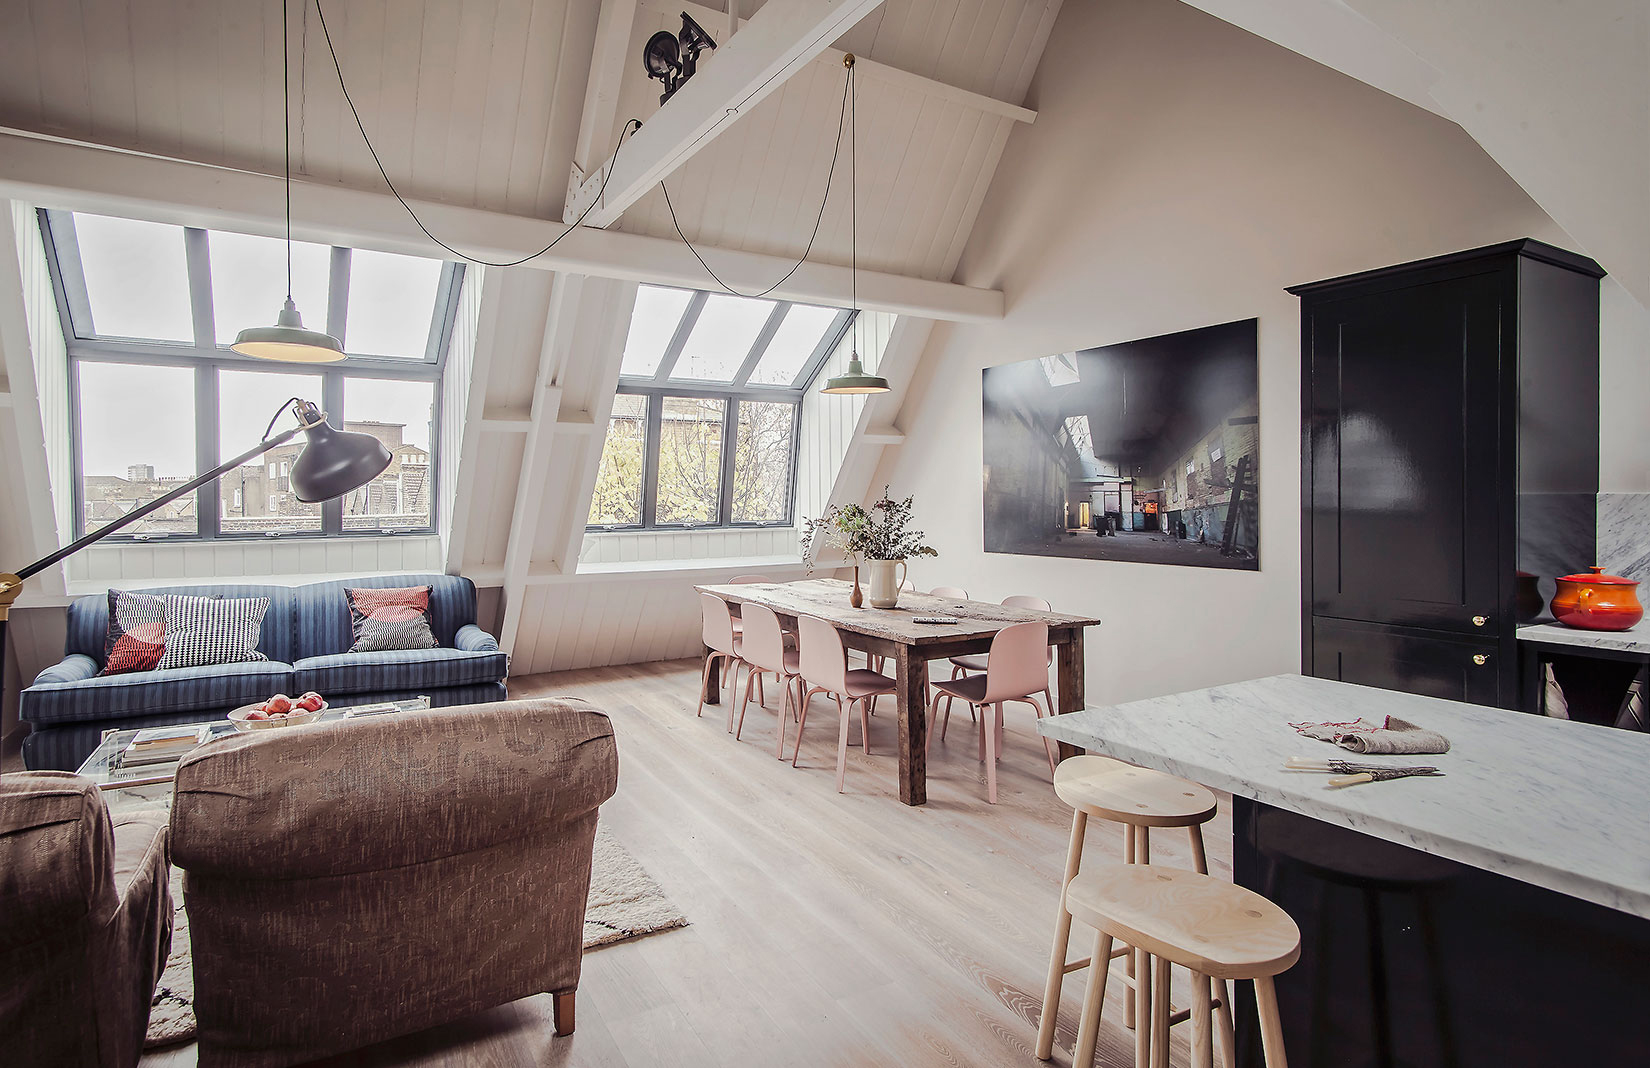 Grange Hall school conversion - the most unusual London homes for sale right now